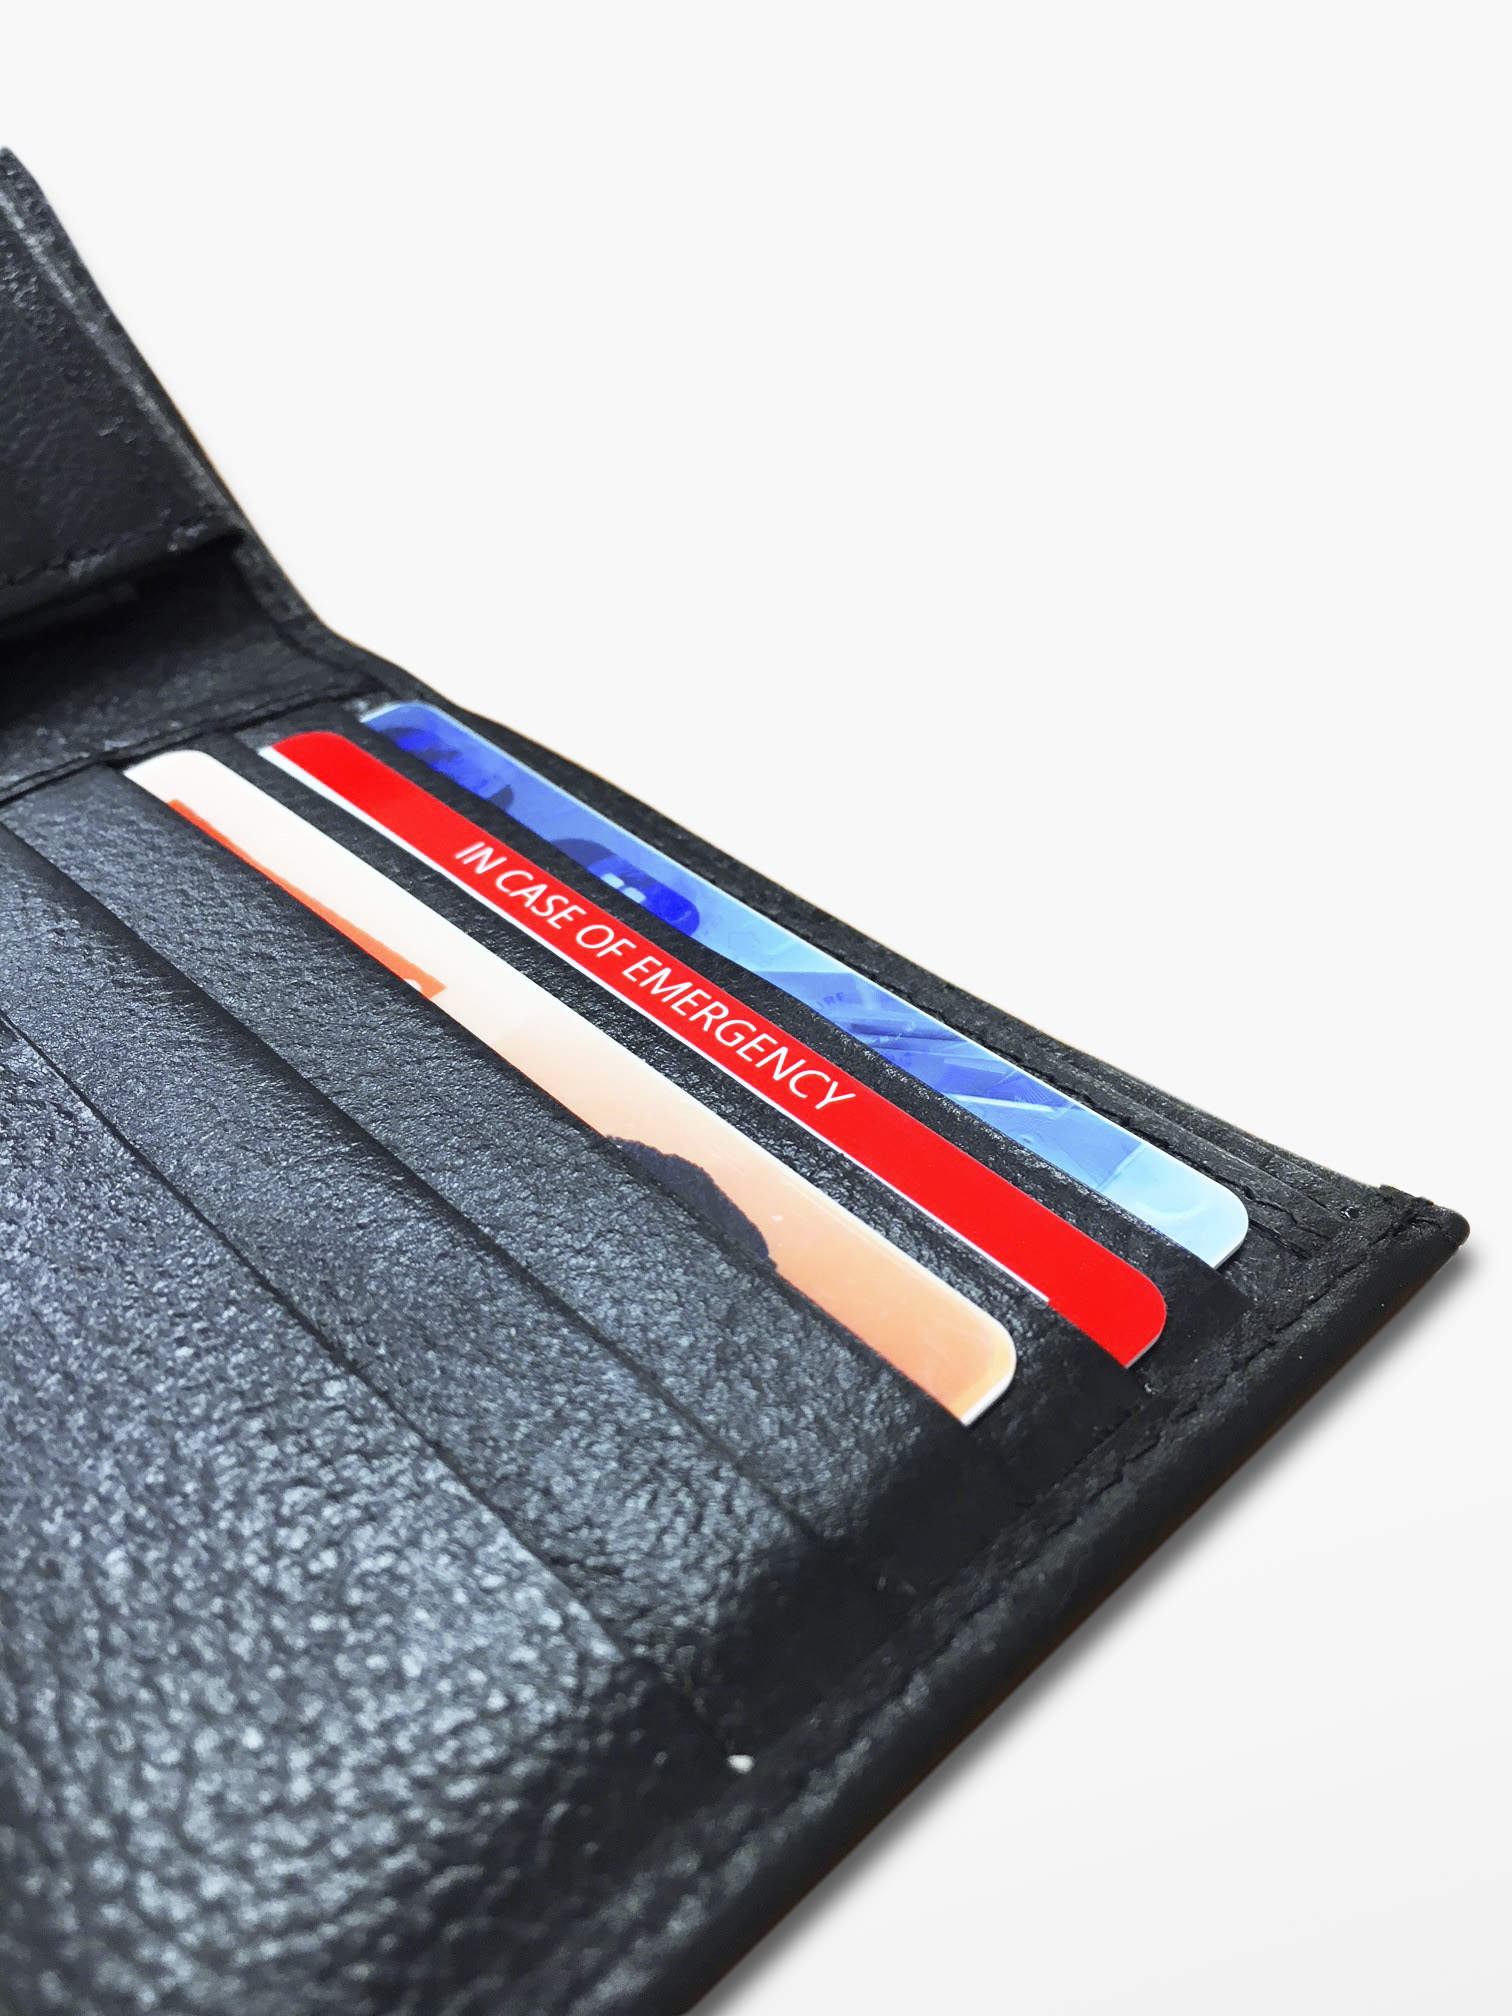 ICEtags wallet card in wallet